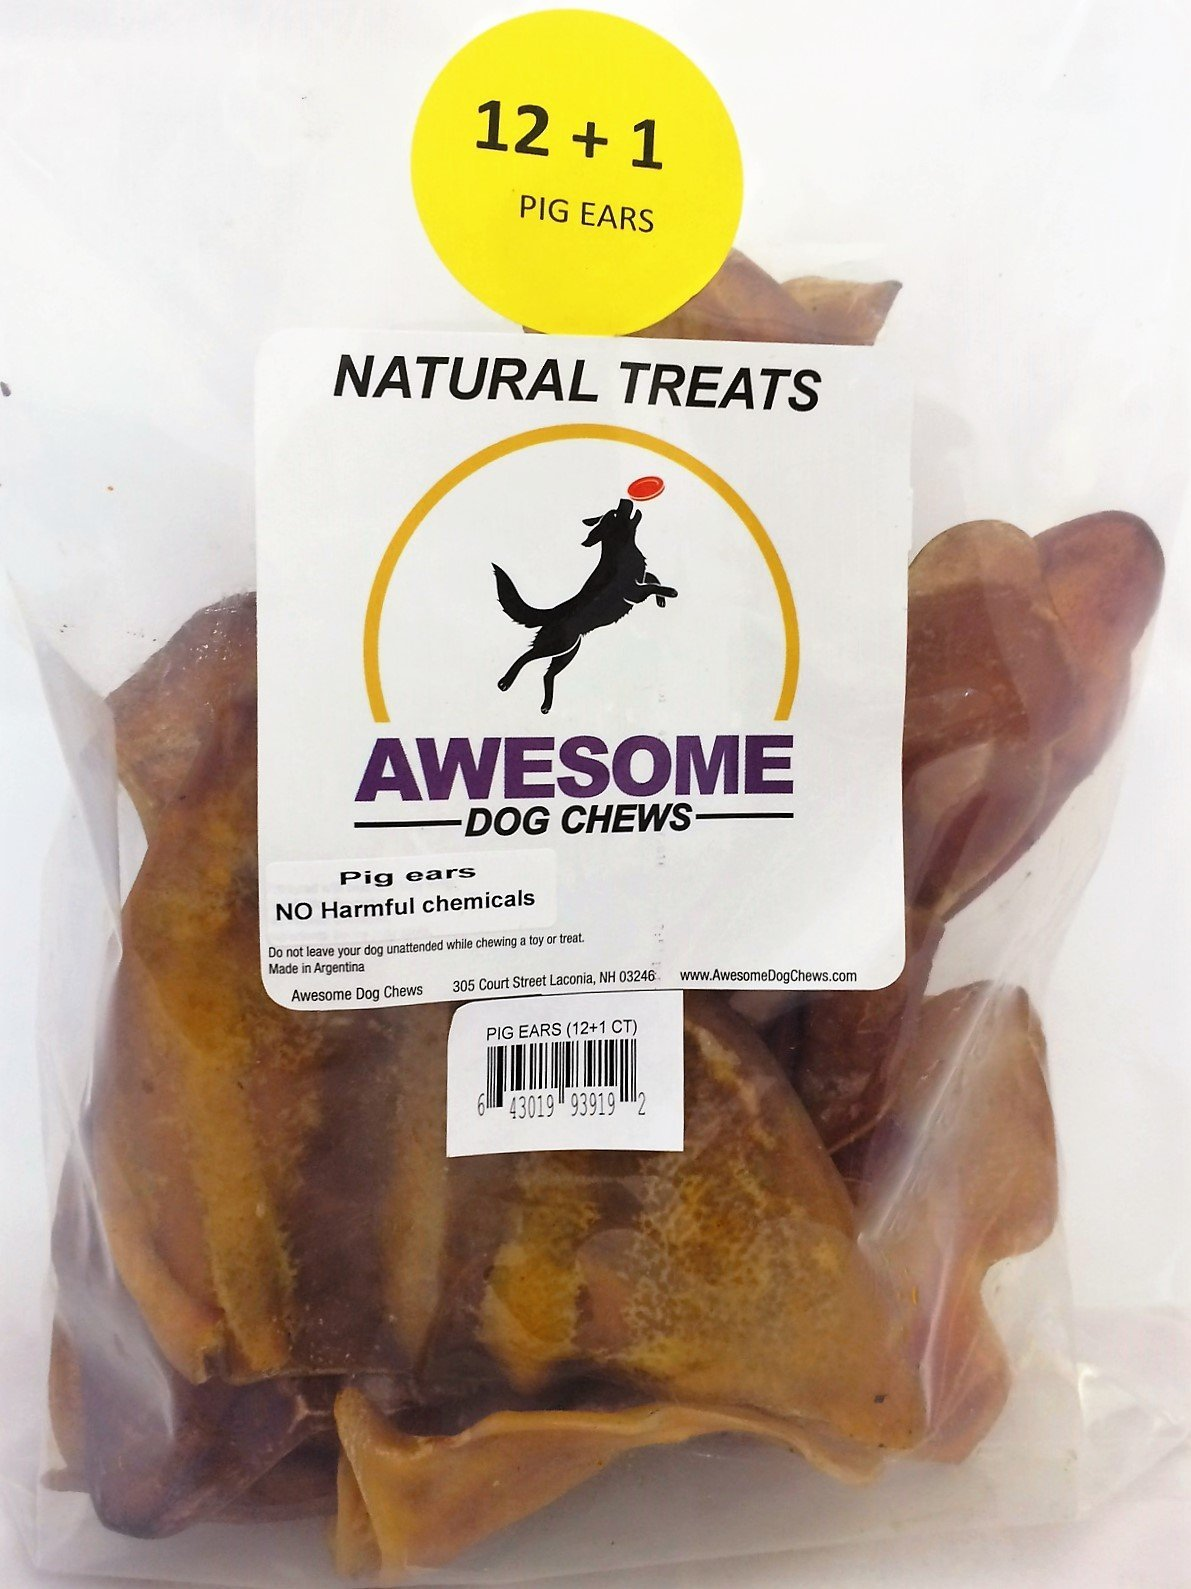 100% Awesome Dog Chews All Natural Pig Ears 12 Count +1 FREE Value Bag - FDA / USDA Inspected Through a Registered FDA Plant